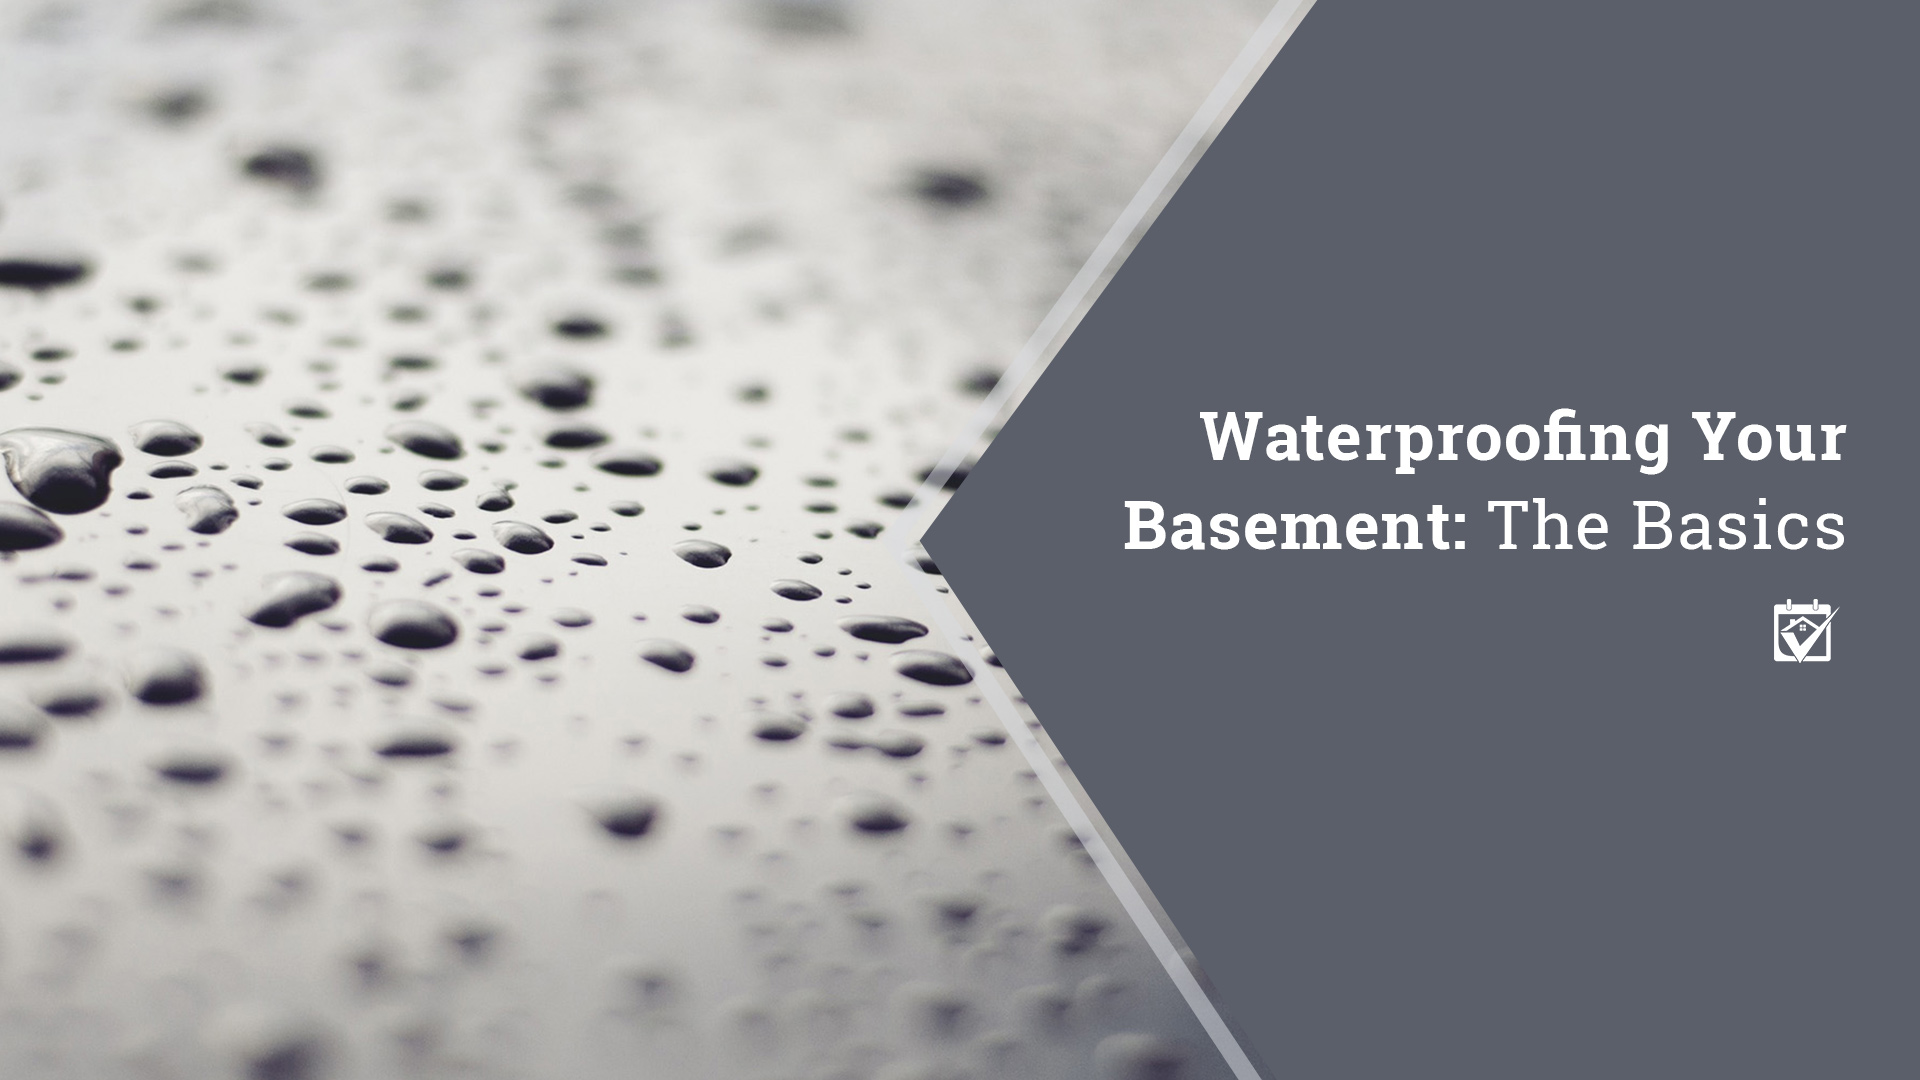 Waterproofing Your Basement: The Basics